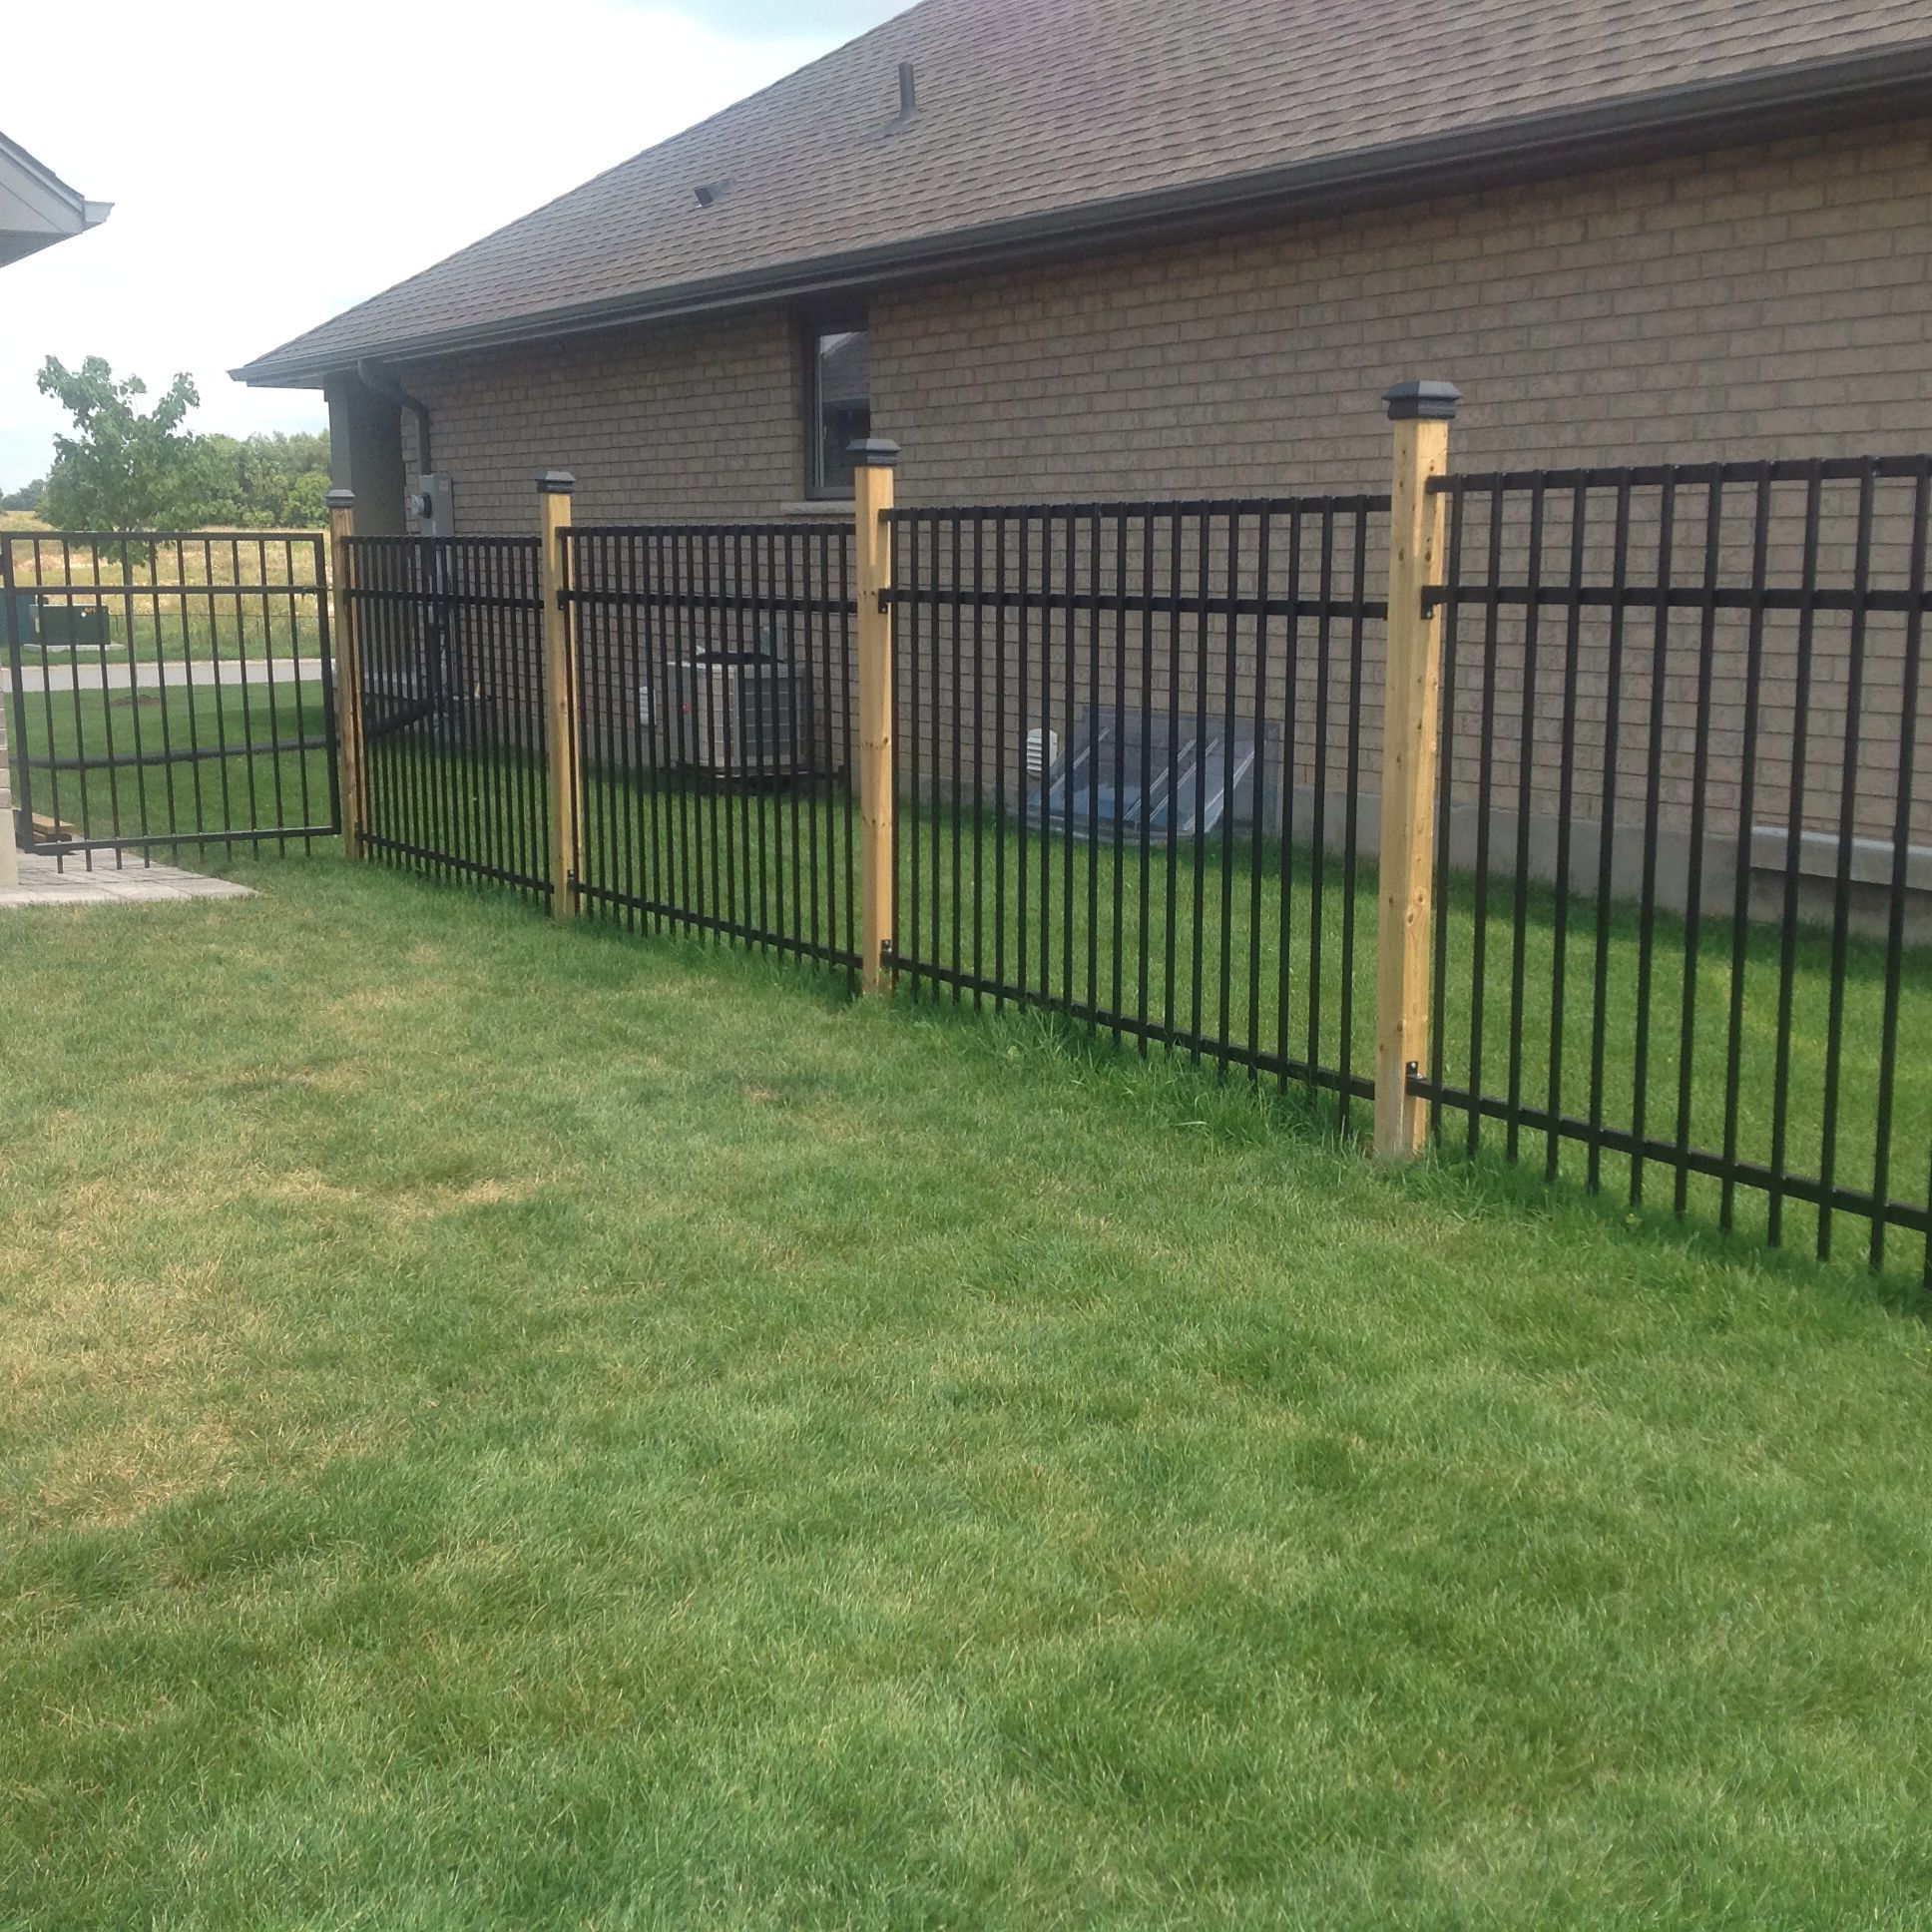 Wrought Iron Fence With 4x4 Wood Posts Black Caps